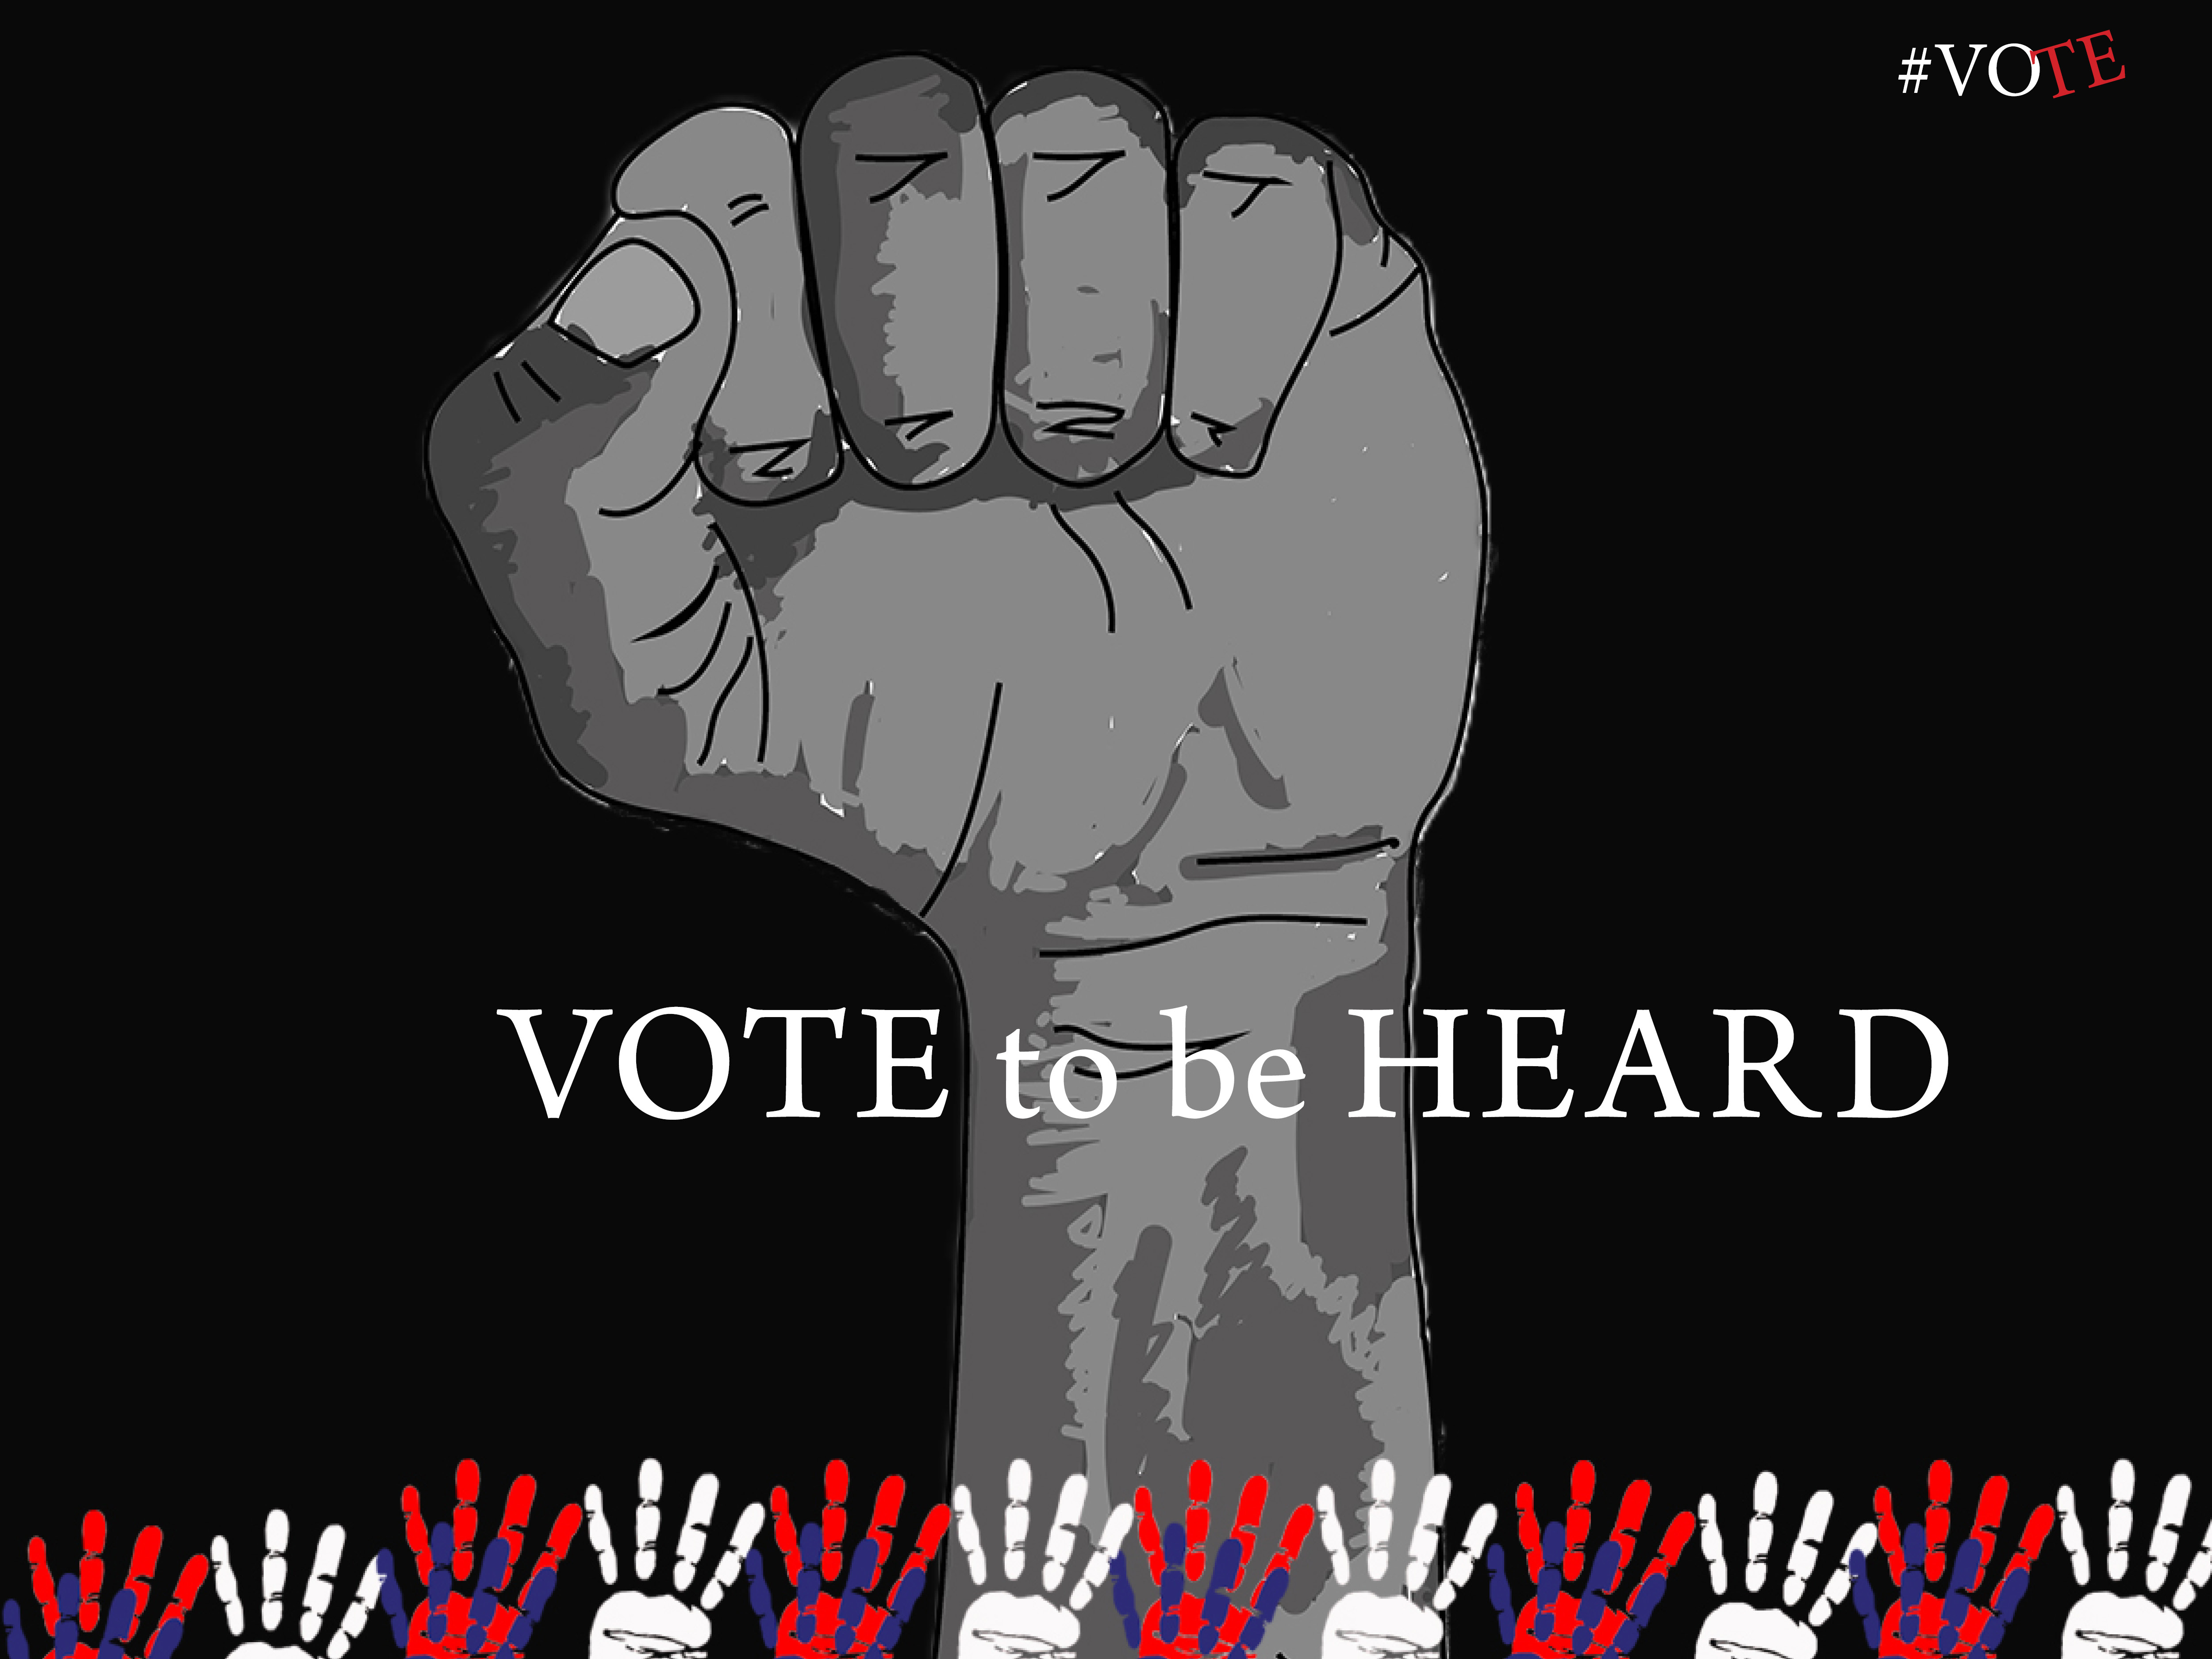 Vote to be HEARD